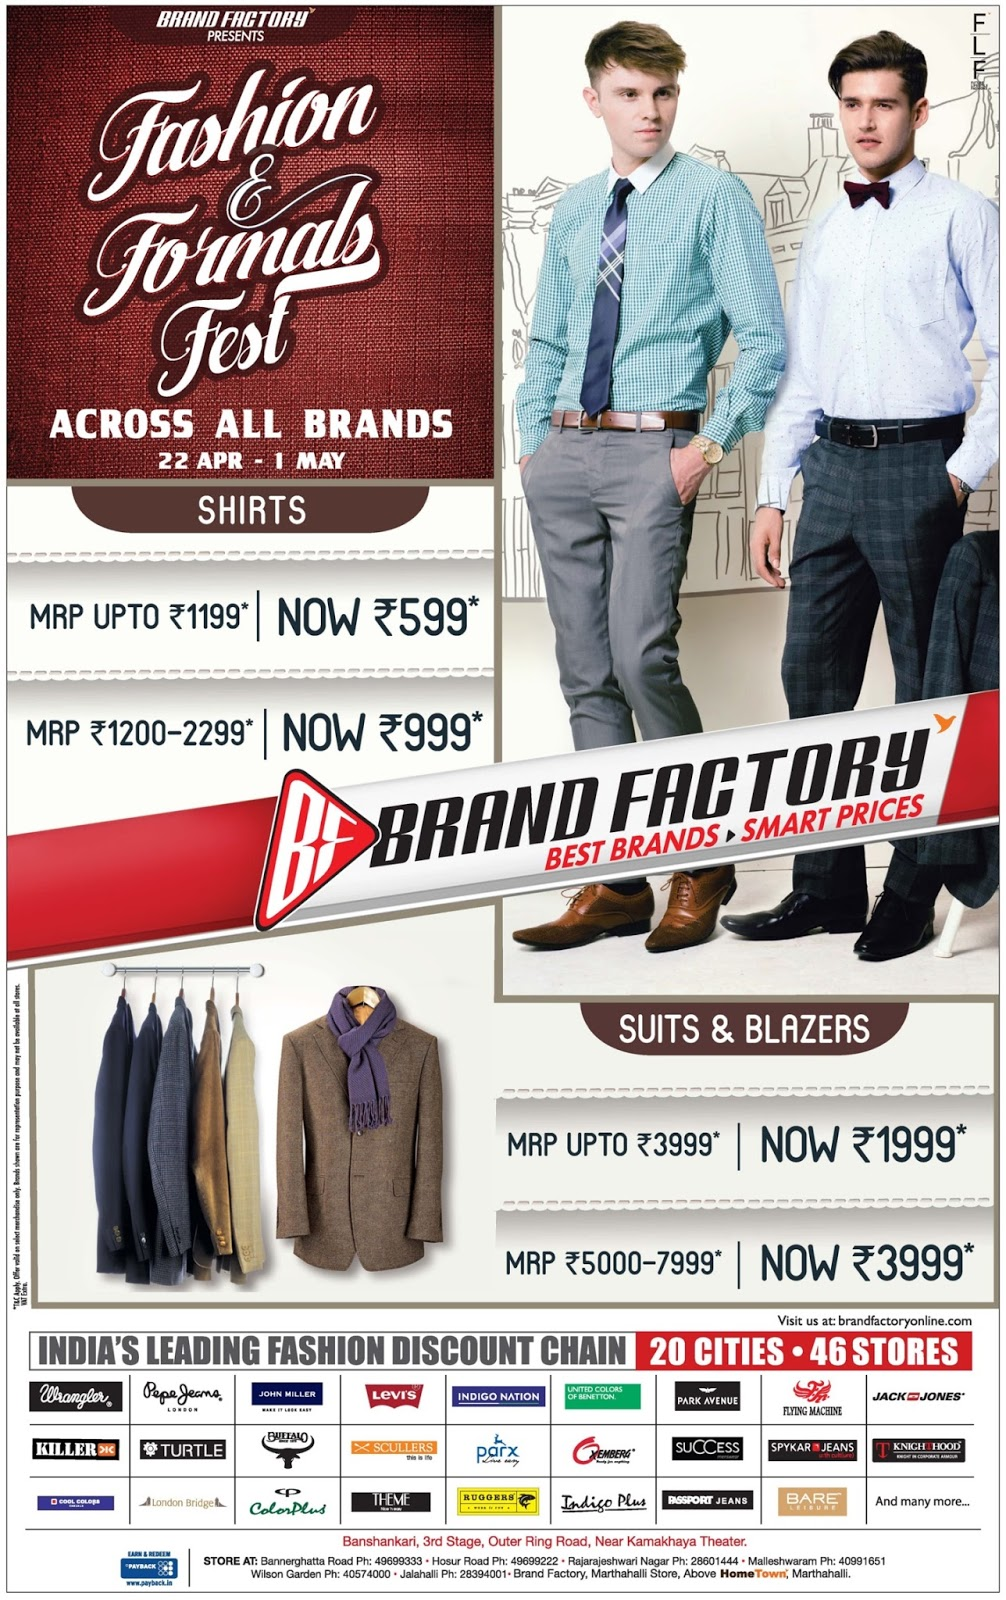 Brand factory Fashion & Formals Fest | April 2016 discount offers | festive offers